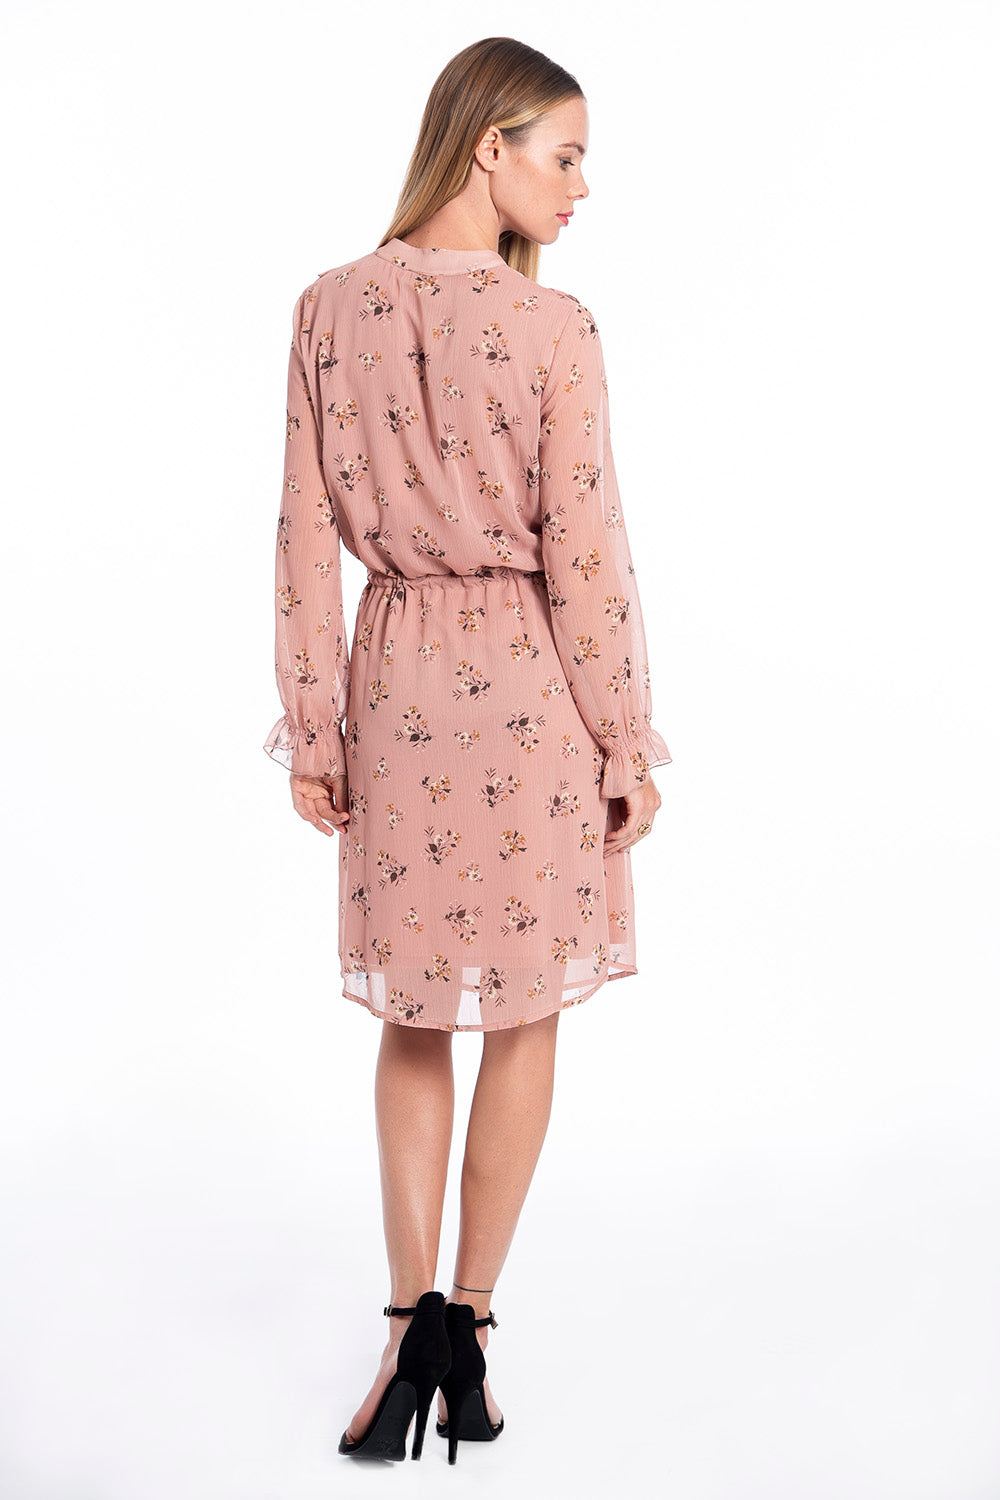 Patrizia Segreti ruffles chiffon dress in ditsy floral